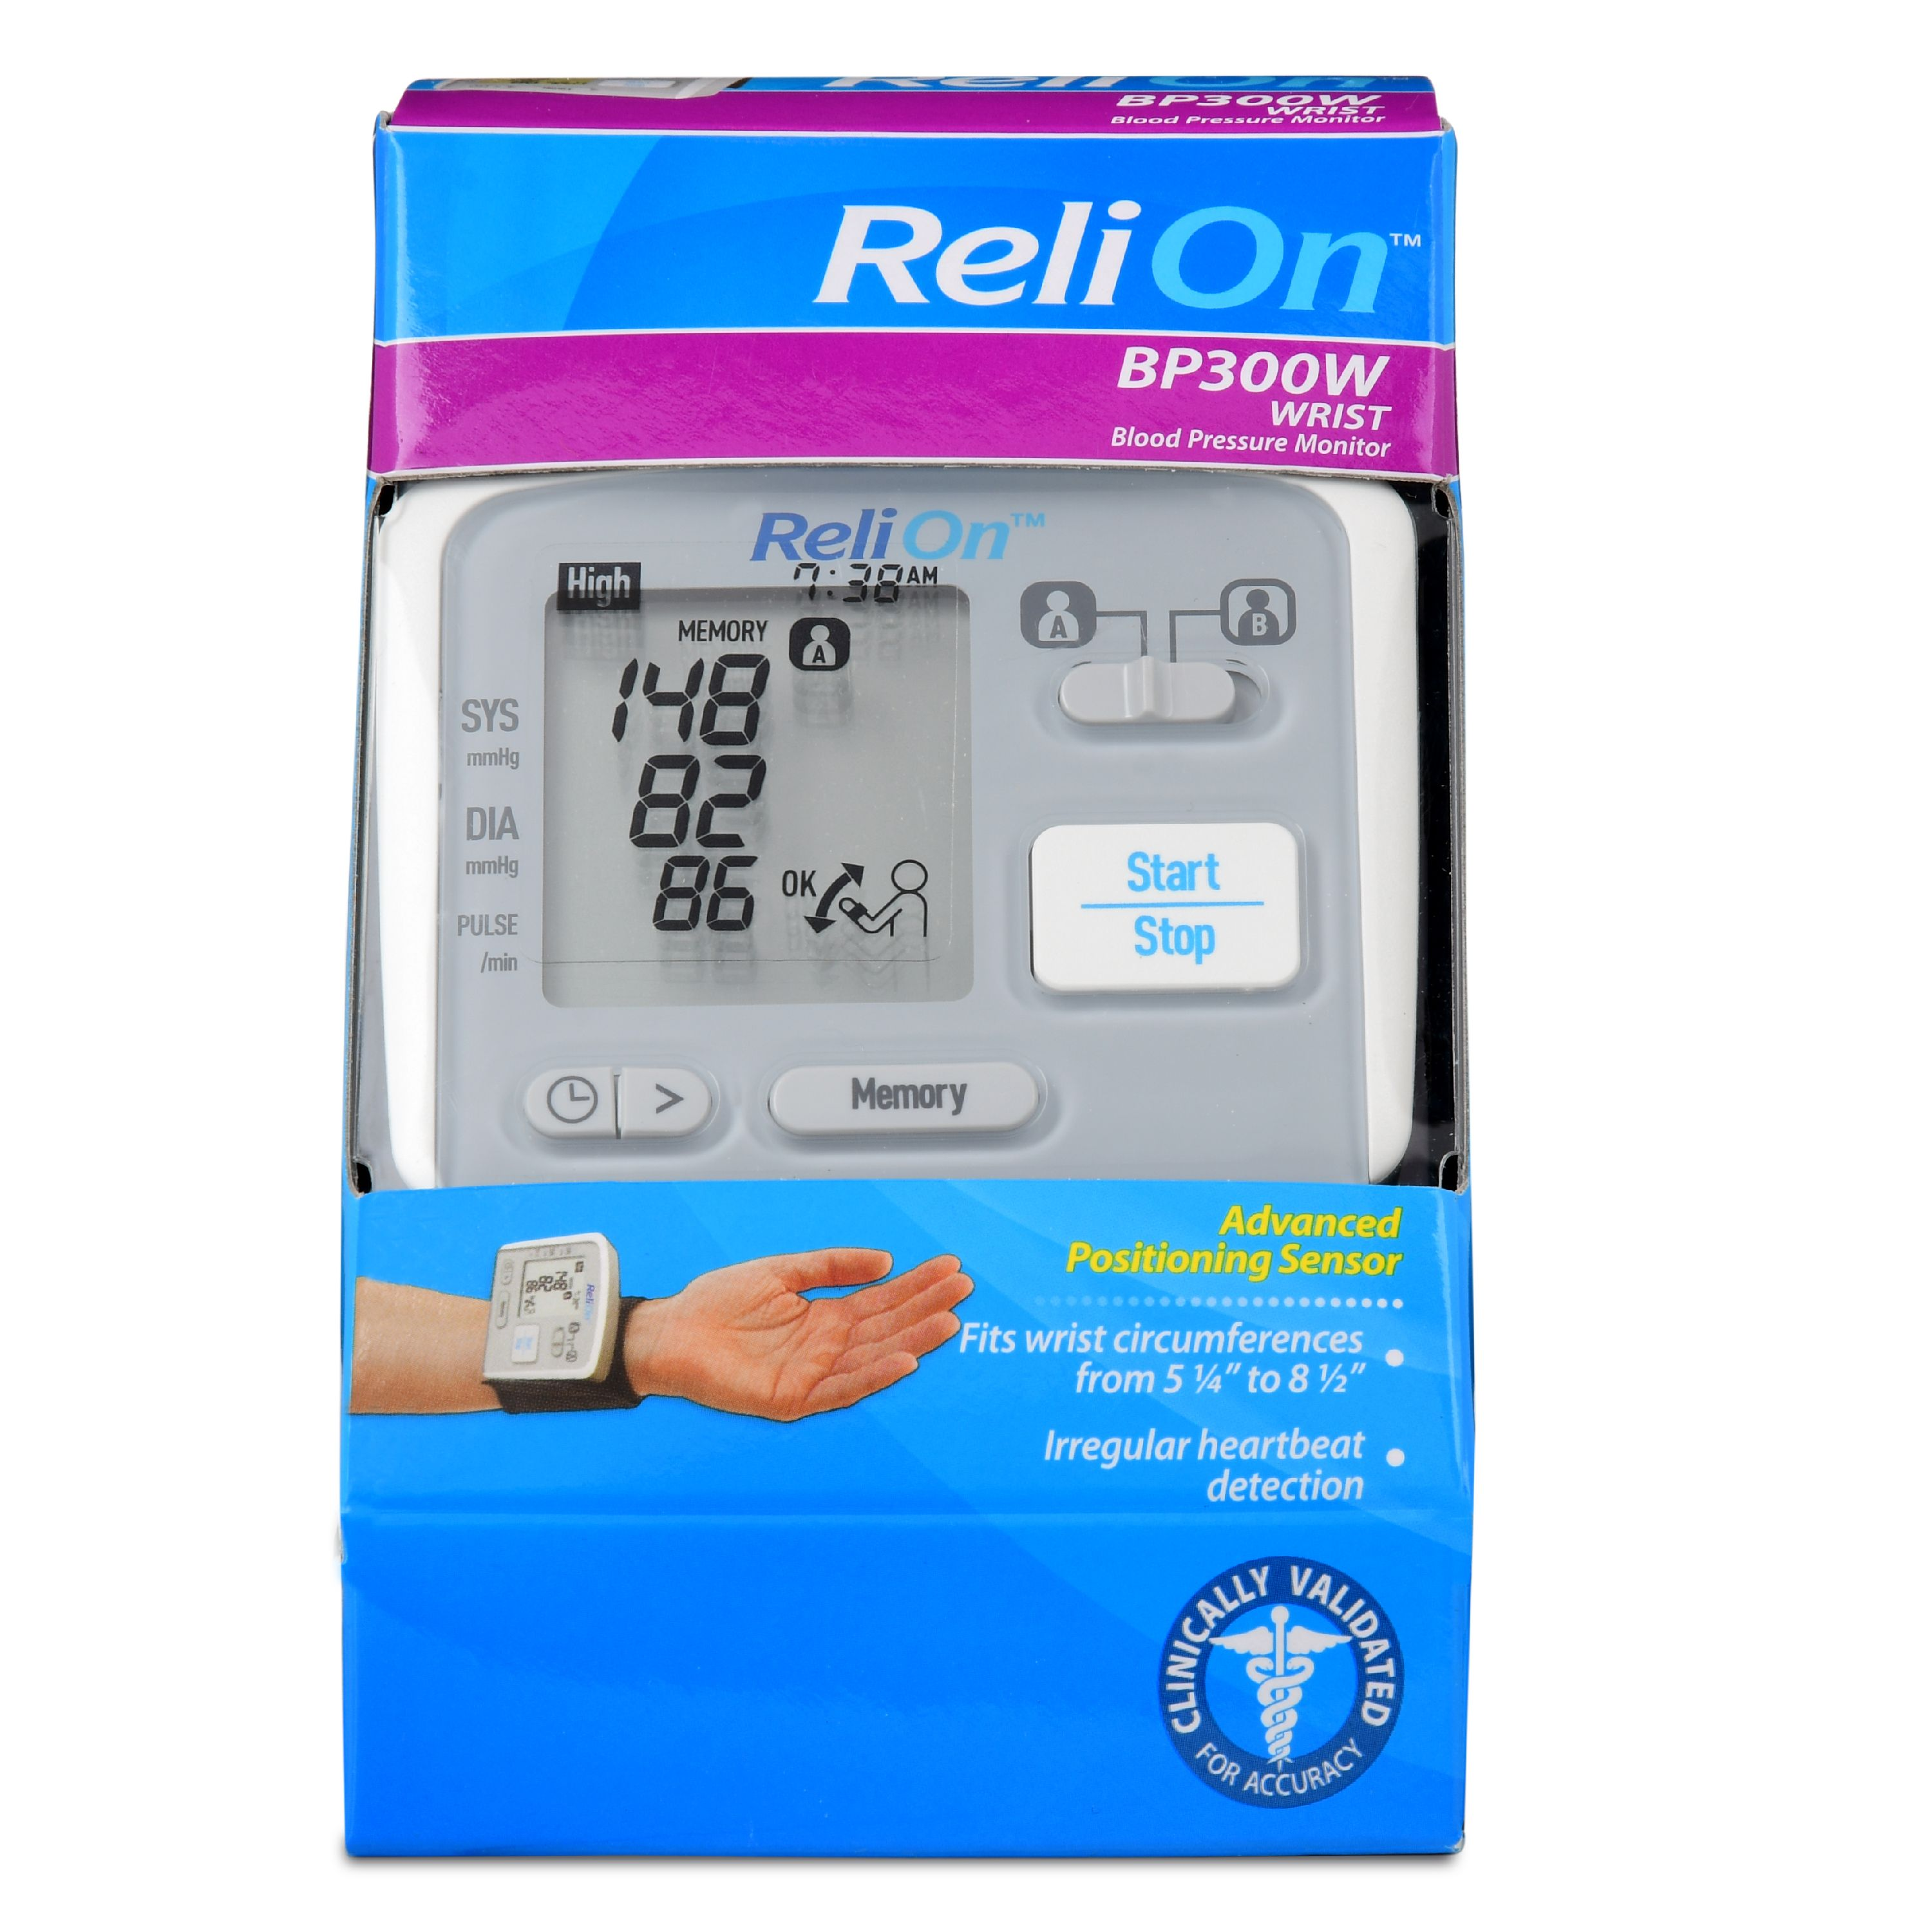 ReliOn BP300W Wrist Blood Pressure Monitor